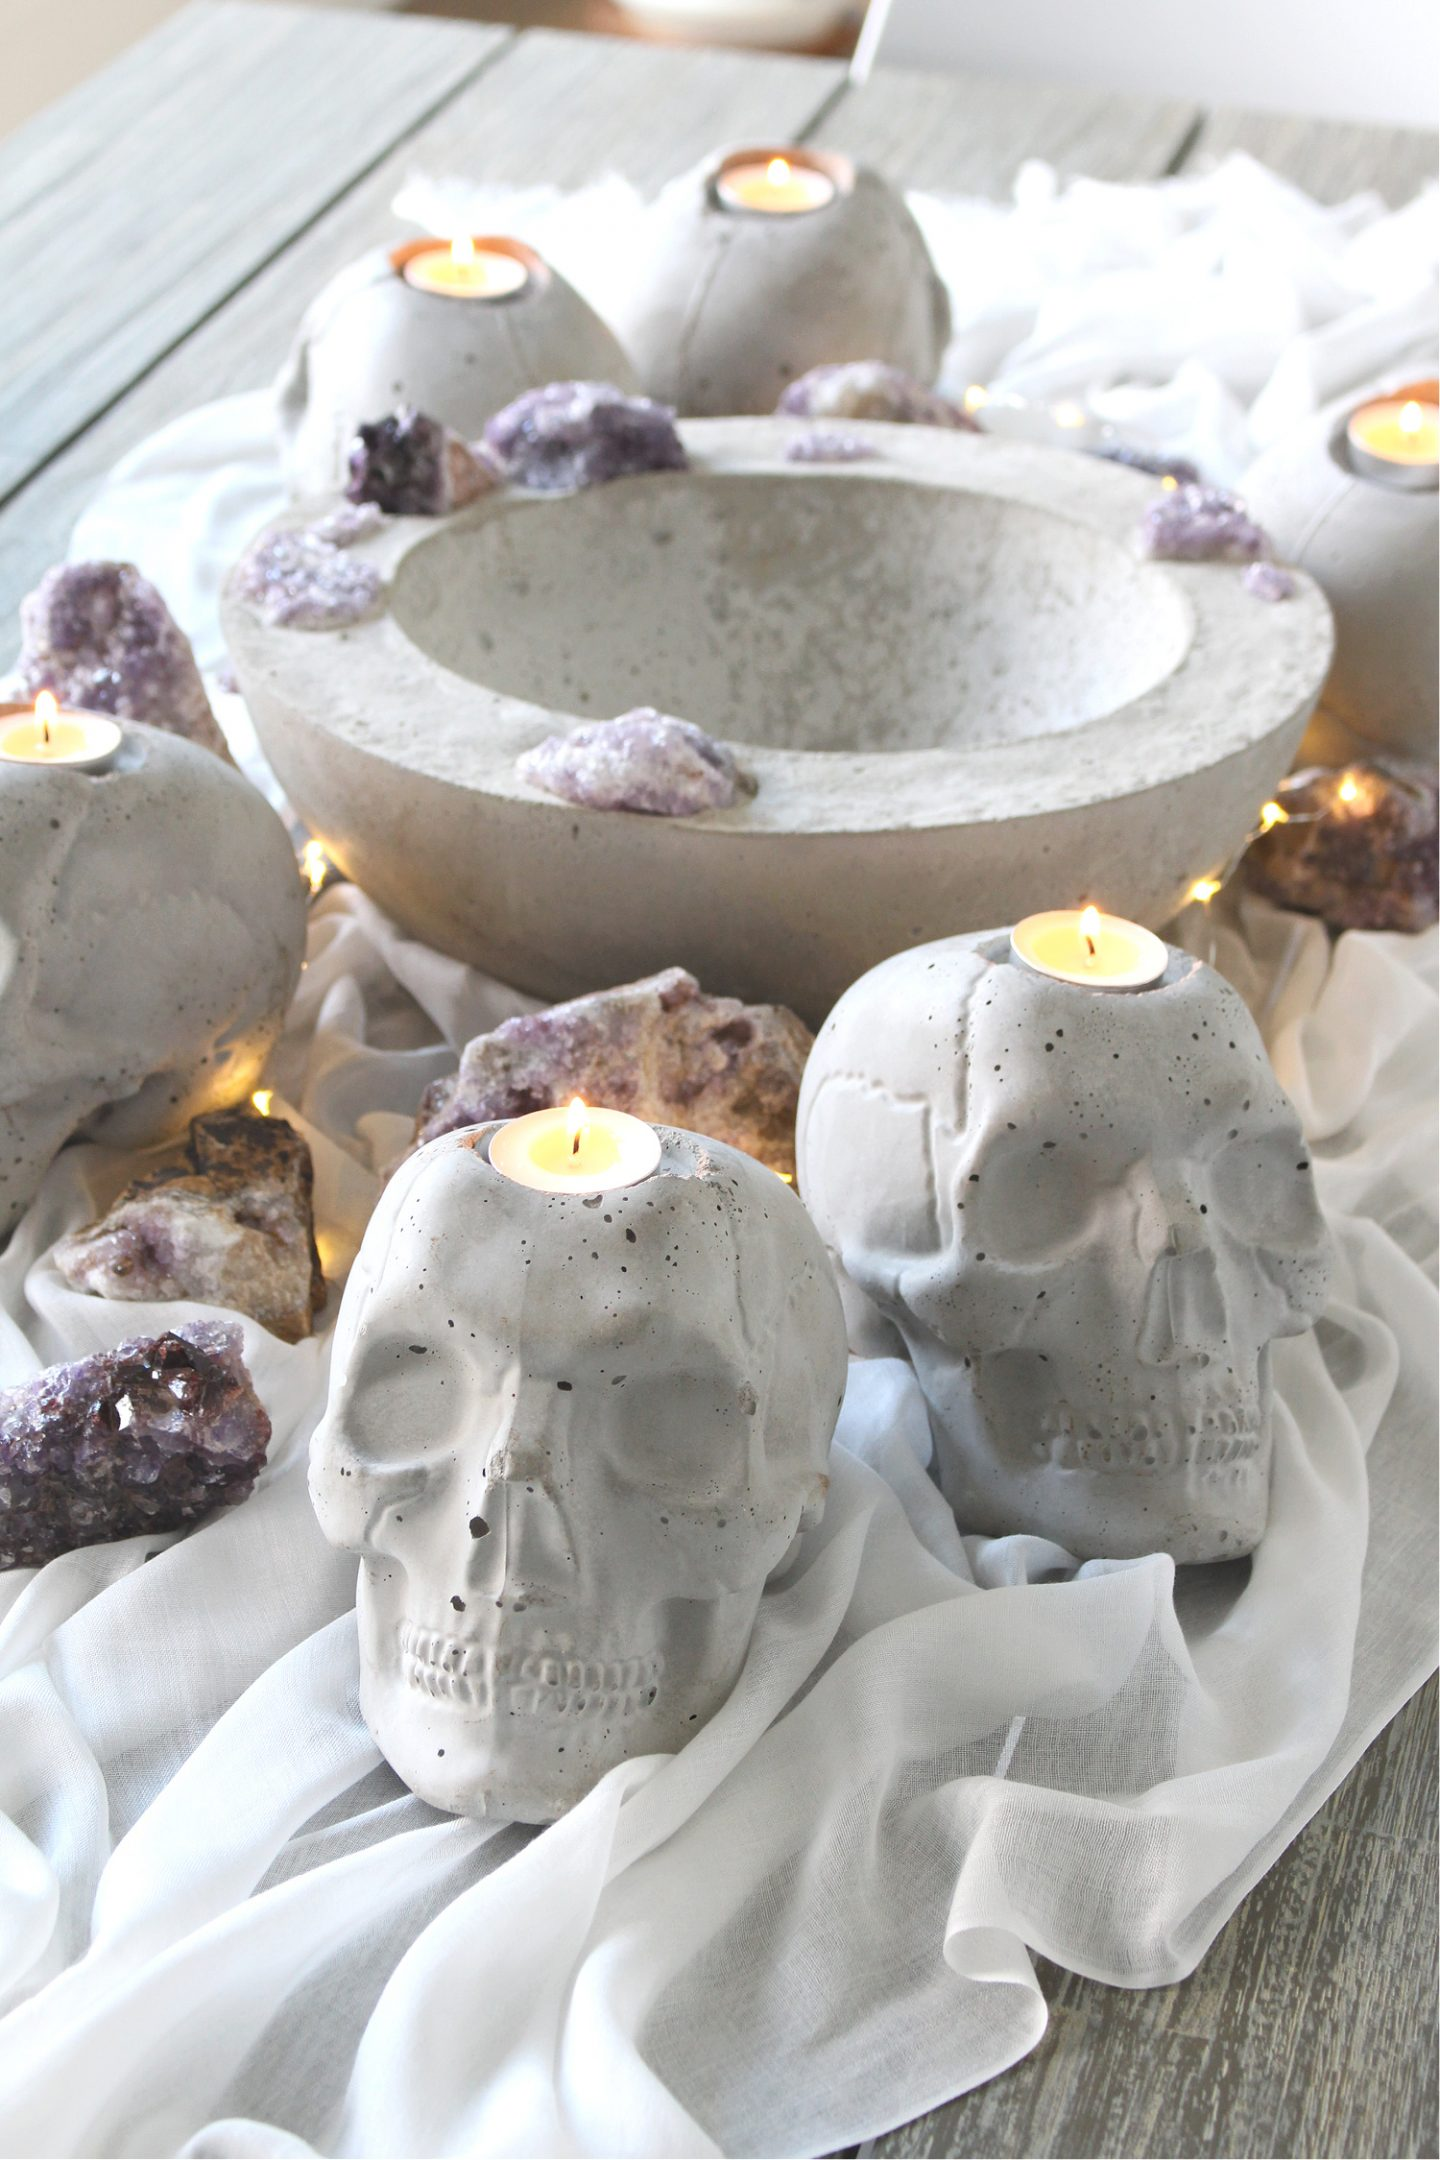 DIY Concrete Skull Candle Holder Tutorial